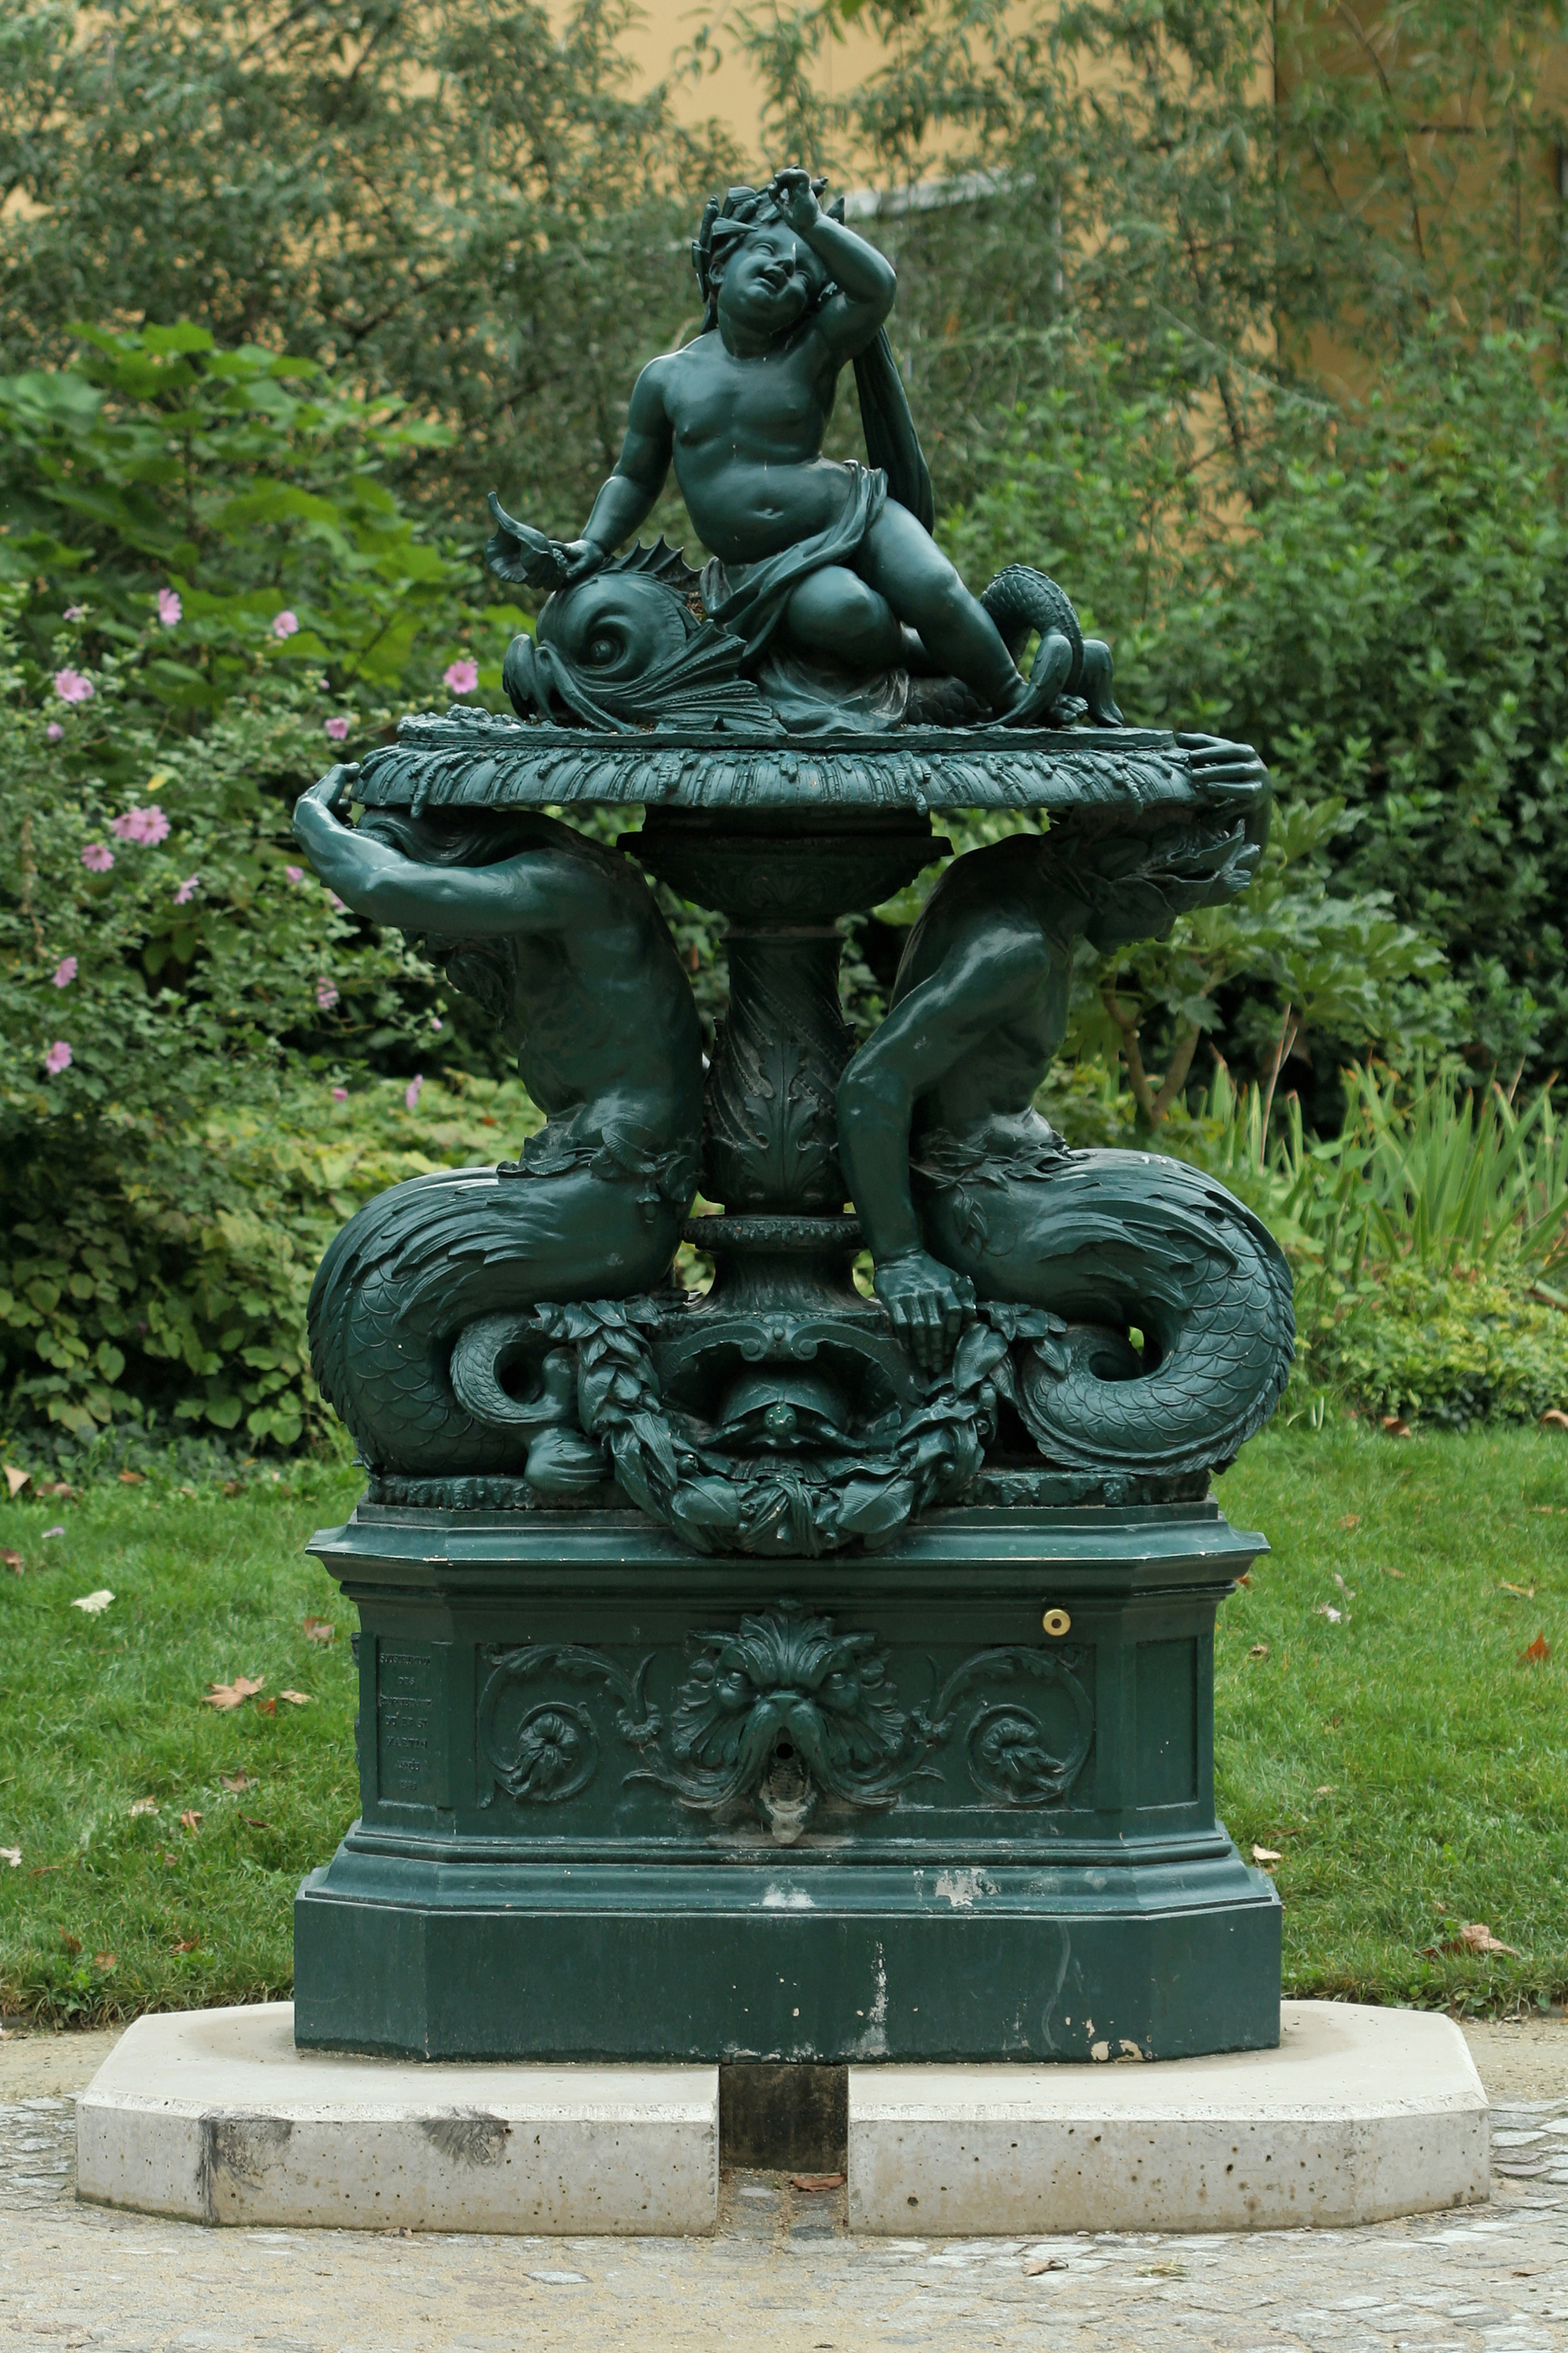 Emejing fontaine de jardin originale ideas design trends for Fontaine jardin design